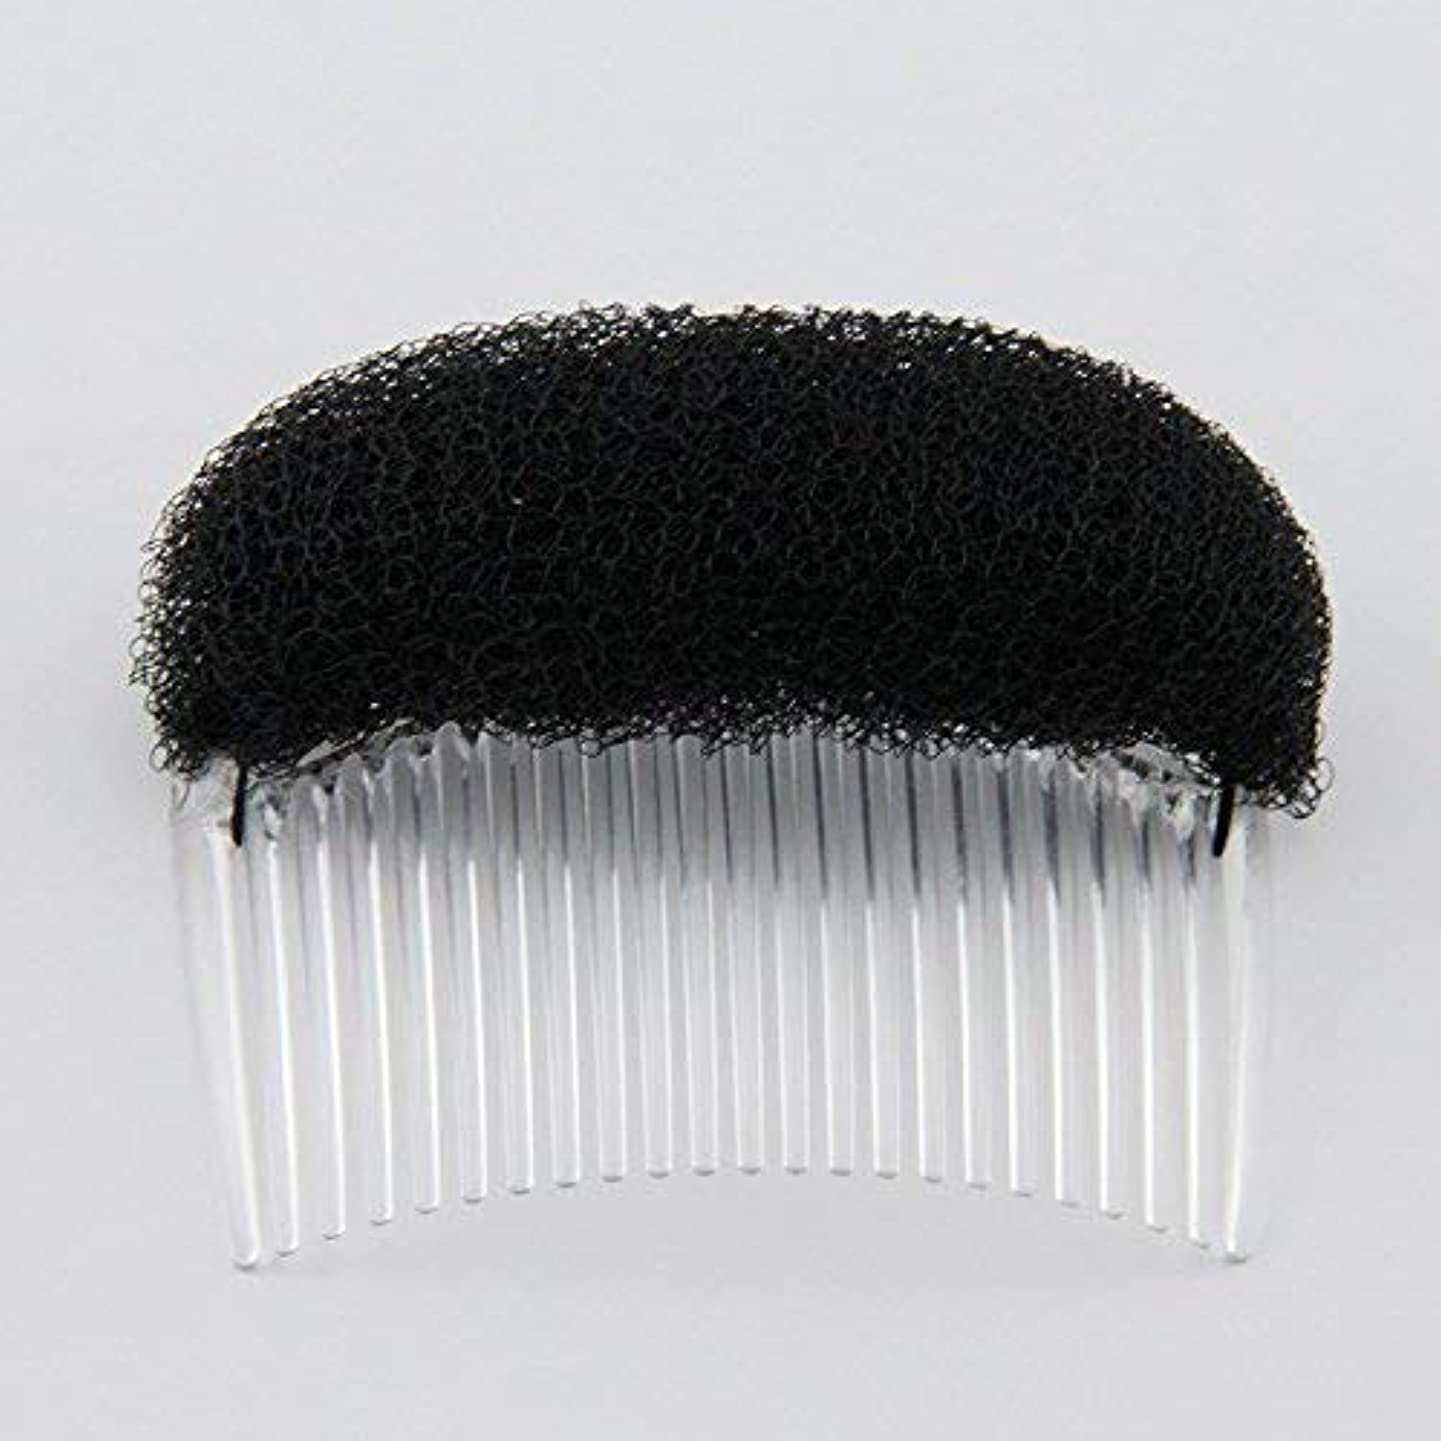 1PC Charming BUMP IT UP Volume Inserts Do Beehive hair styler Insert Tool Hair Comb Black/Brown colors for choose...